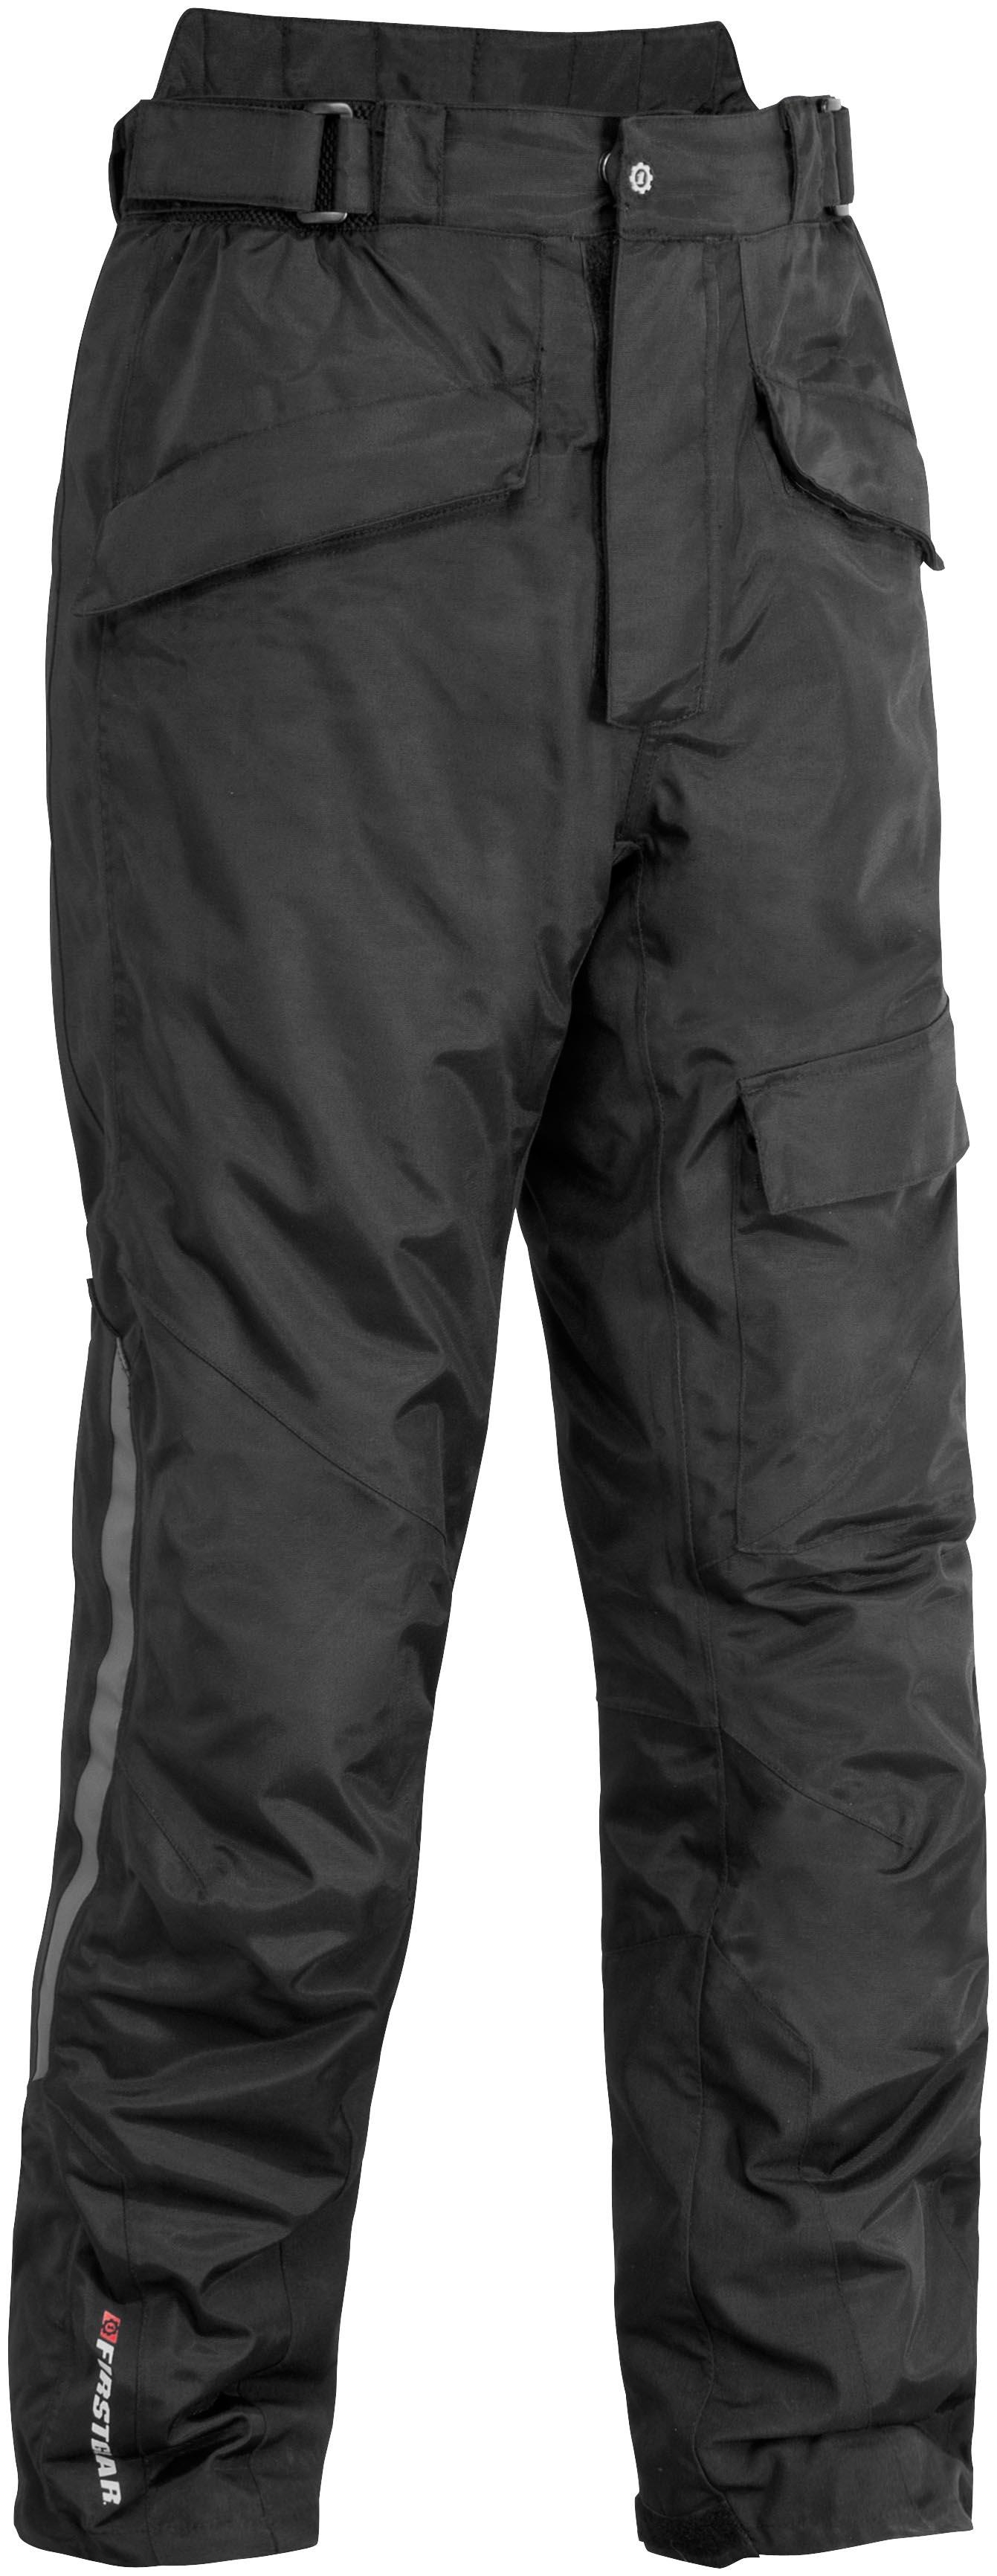 14' HT Overpants